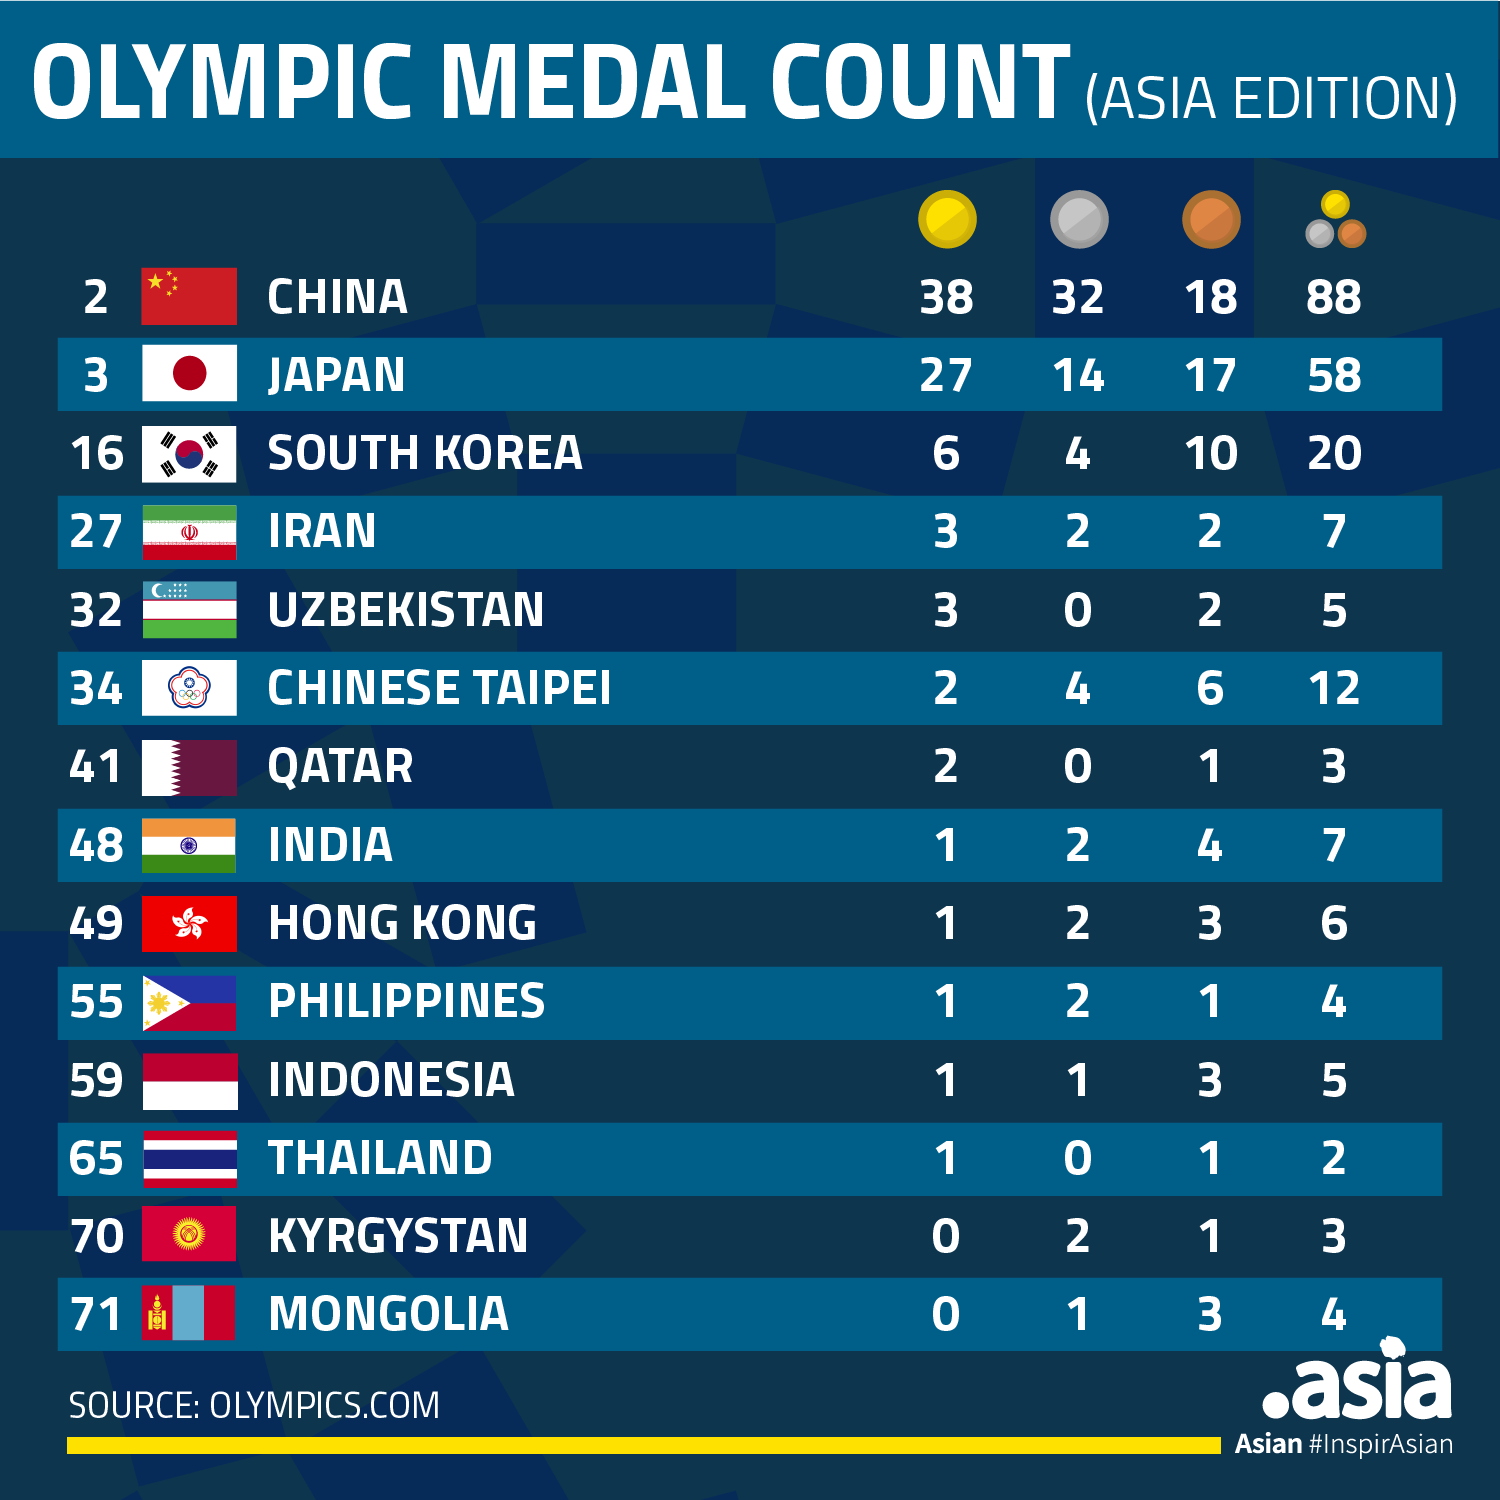 DotAsiaShoutOuts - 2020 Summer Olympic Medal Count